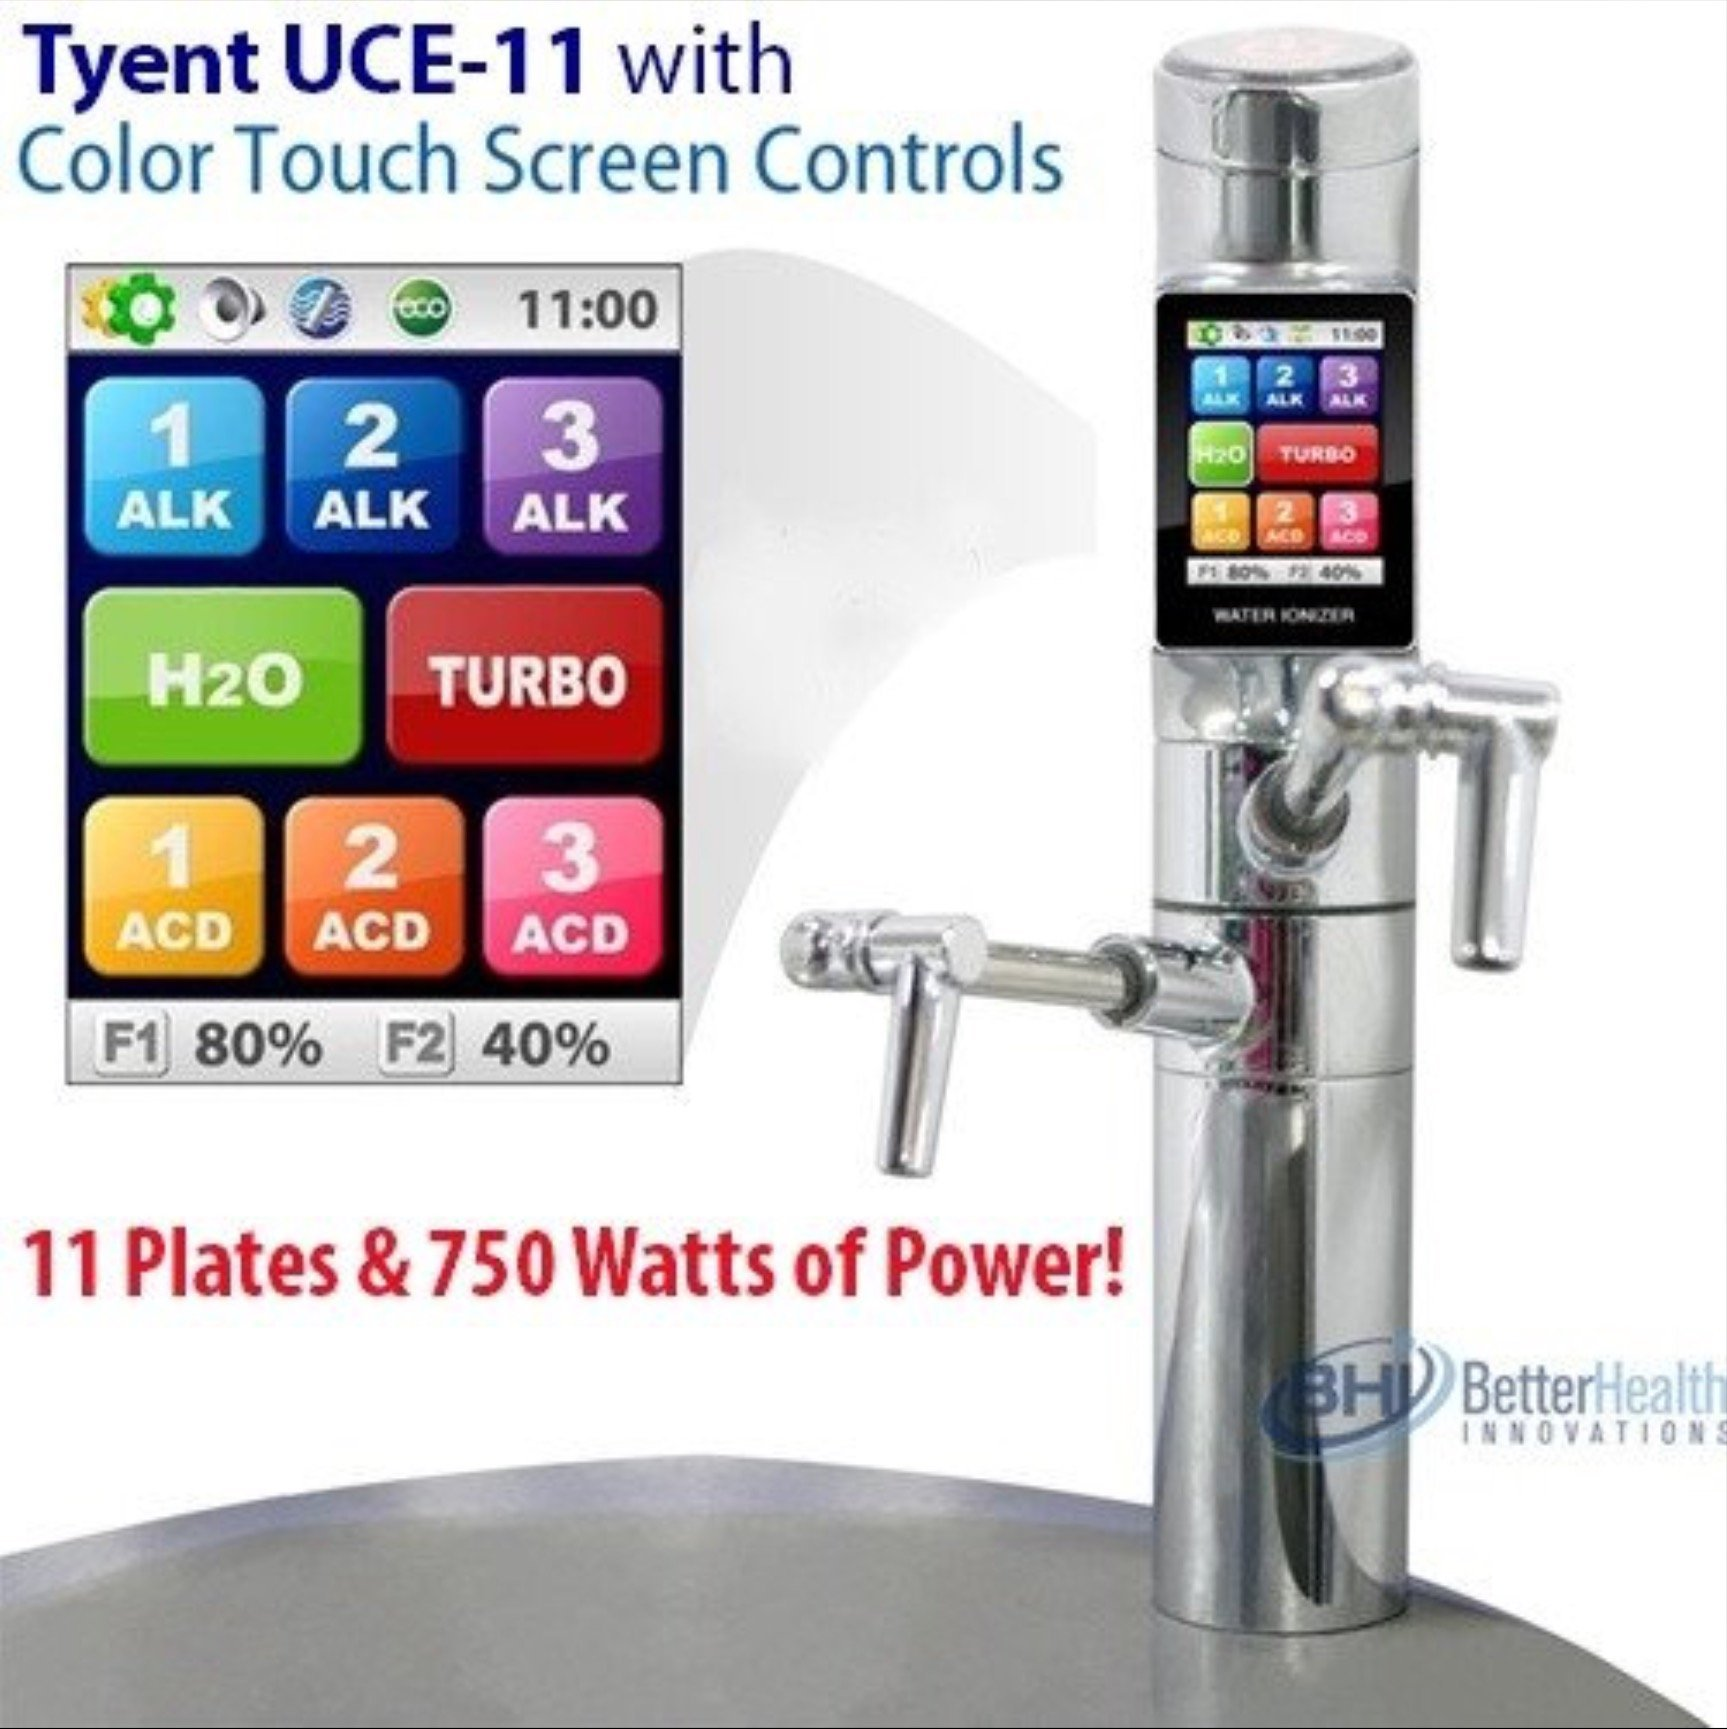 Tyent UCE-11 Under Counter Water Ionizer - Next Generation - Healthy Anti-Oxidant Ionized Water - pH Range from 2pH - 12pH* - 11 Plates - 750 Watts of Power - Alkaline Water Generator - Turbo Mode - Top of the Line - Designed for High End Kitchens